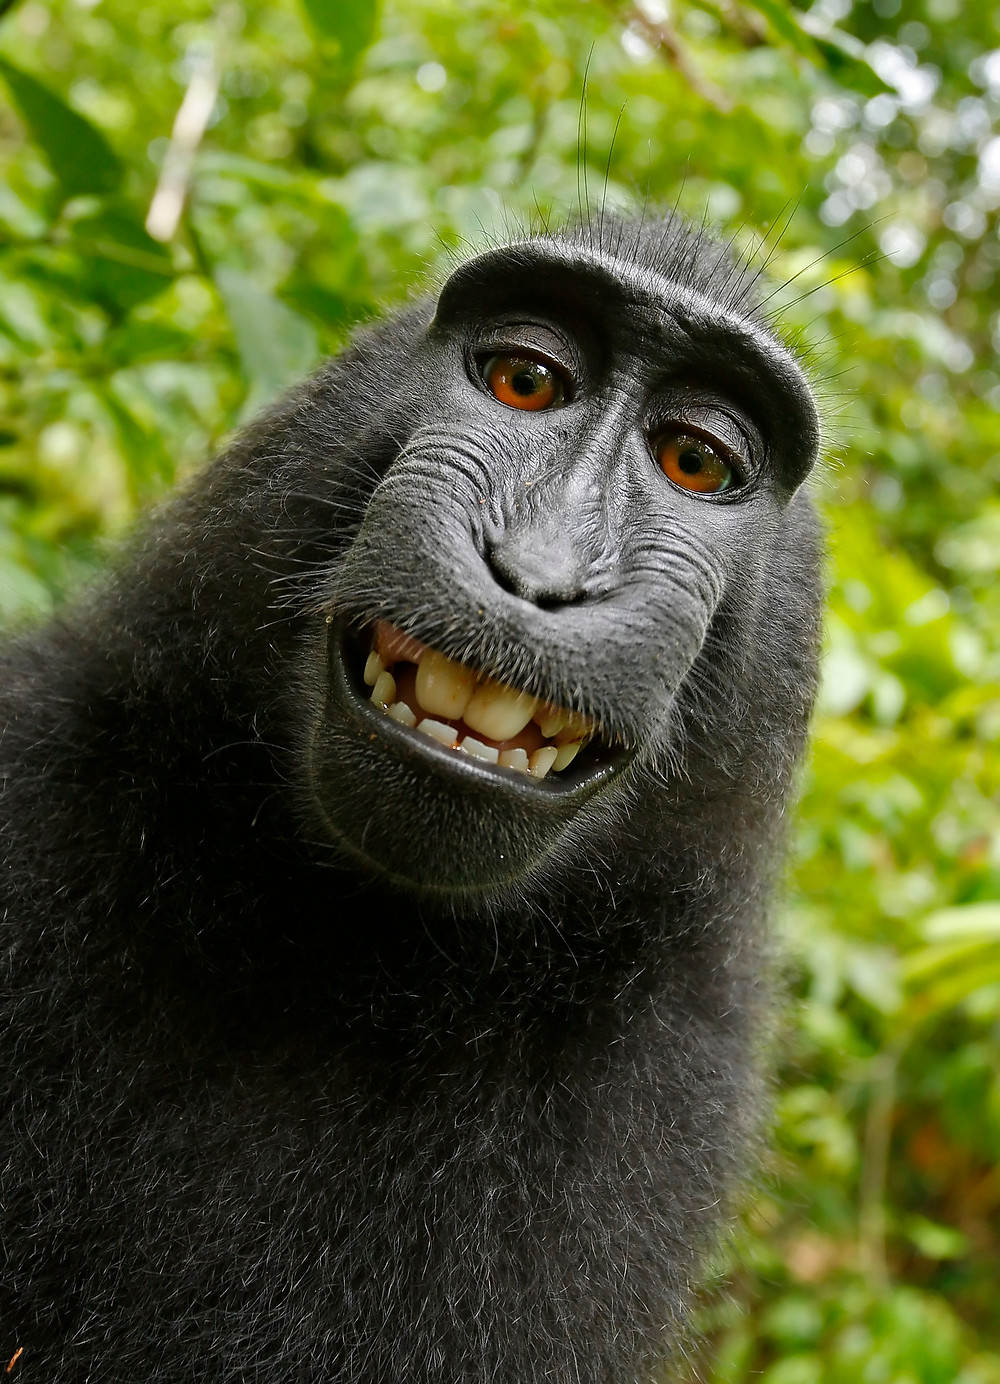 One of the monkey selfies at issue.